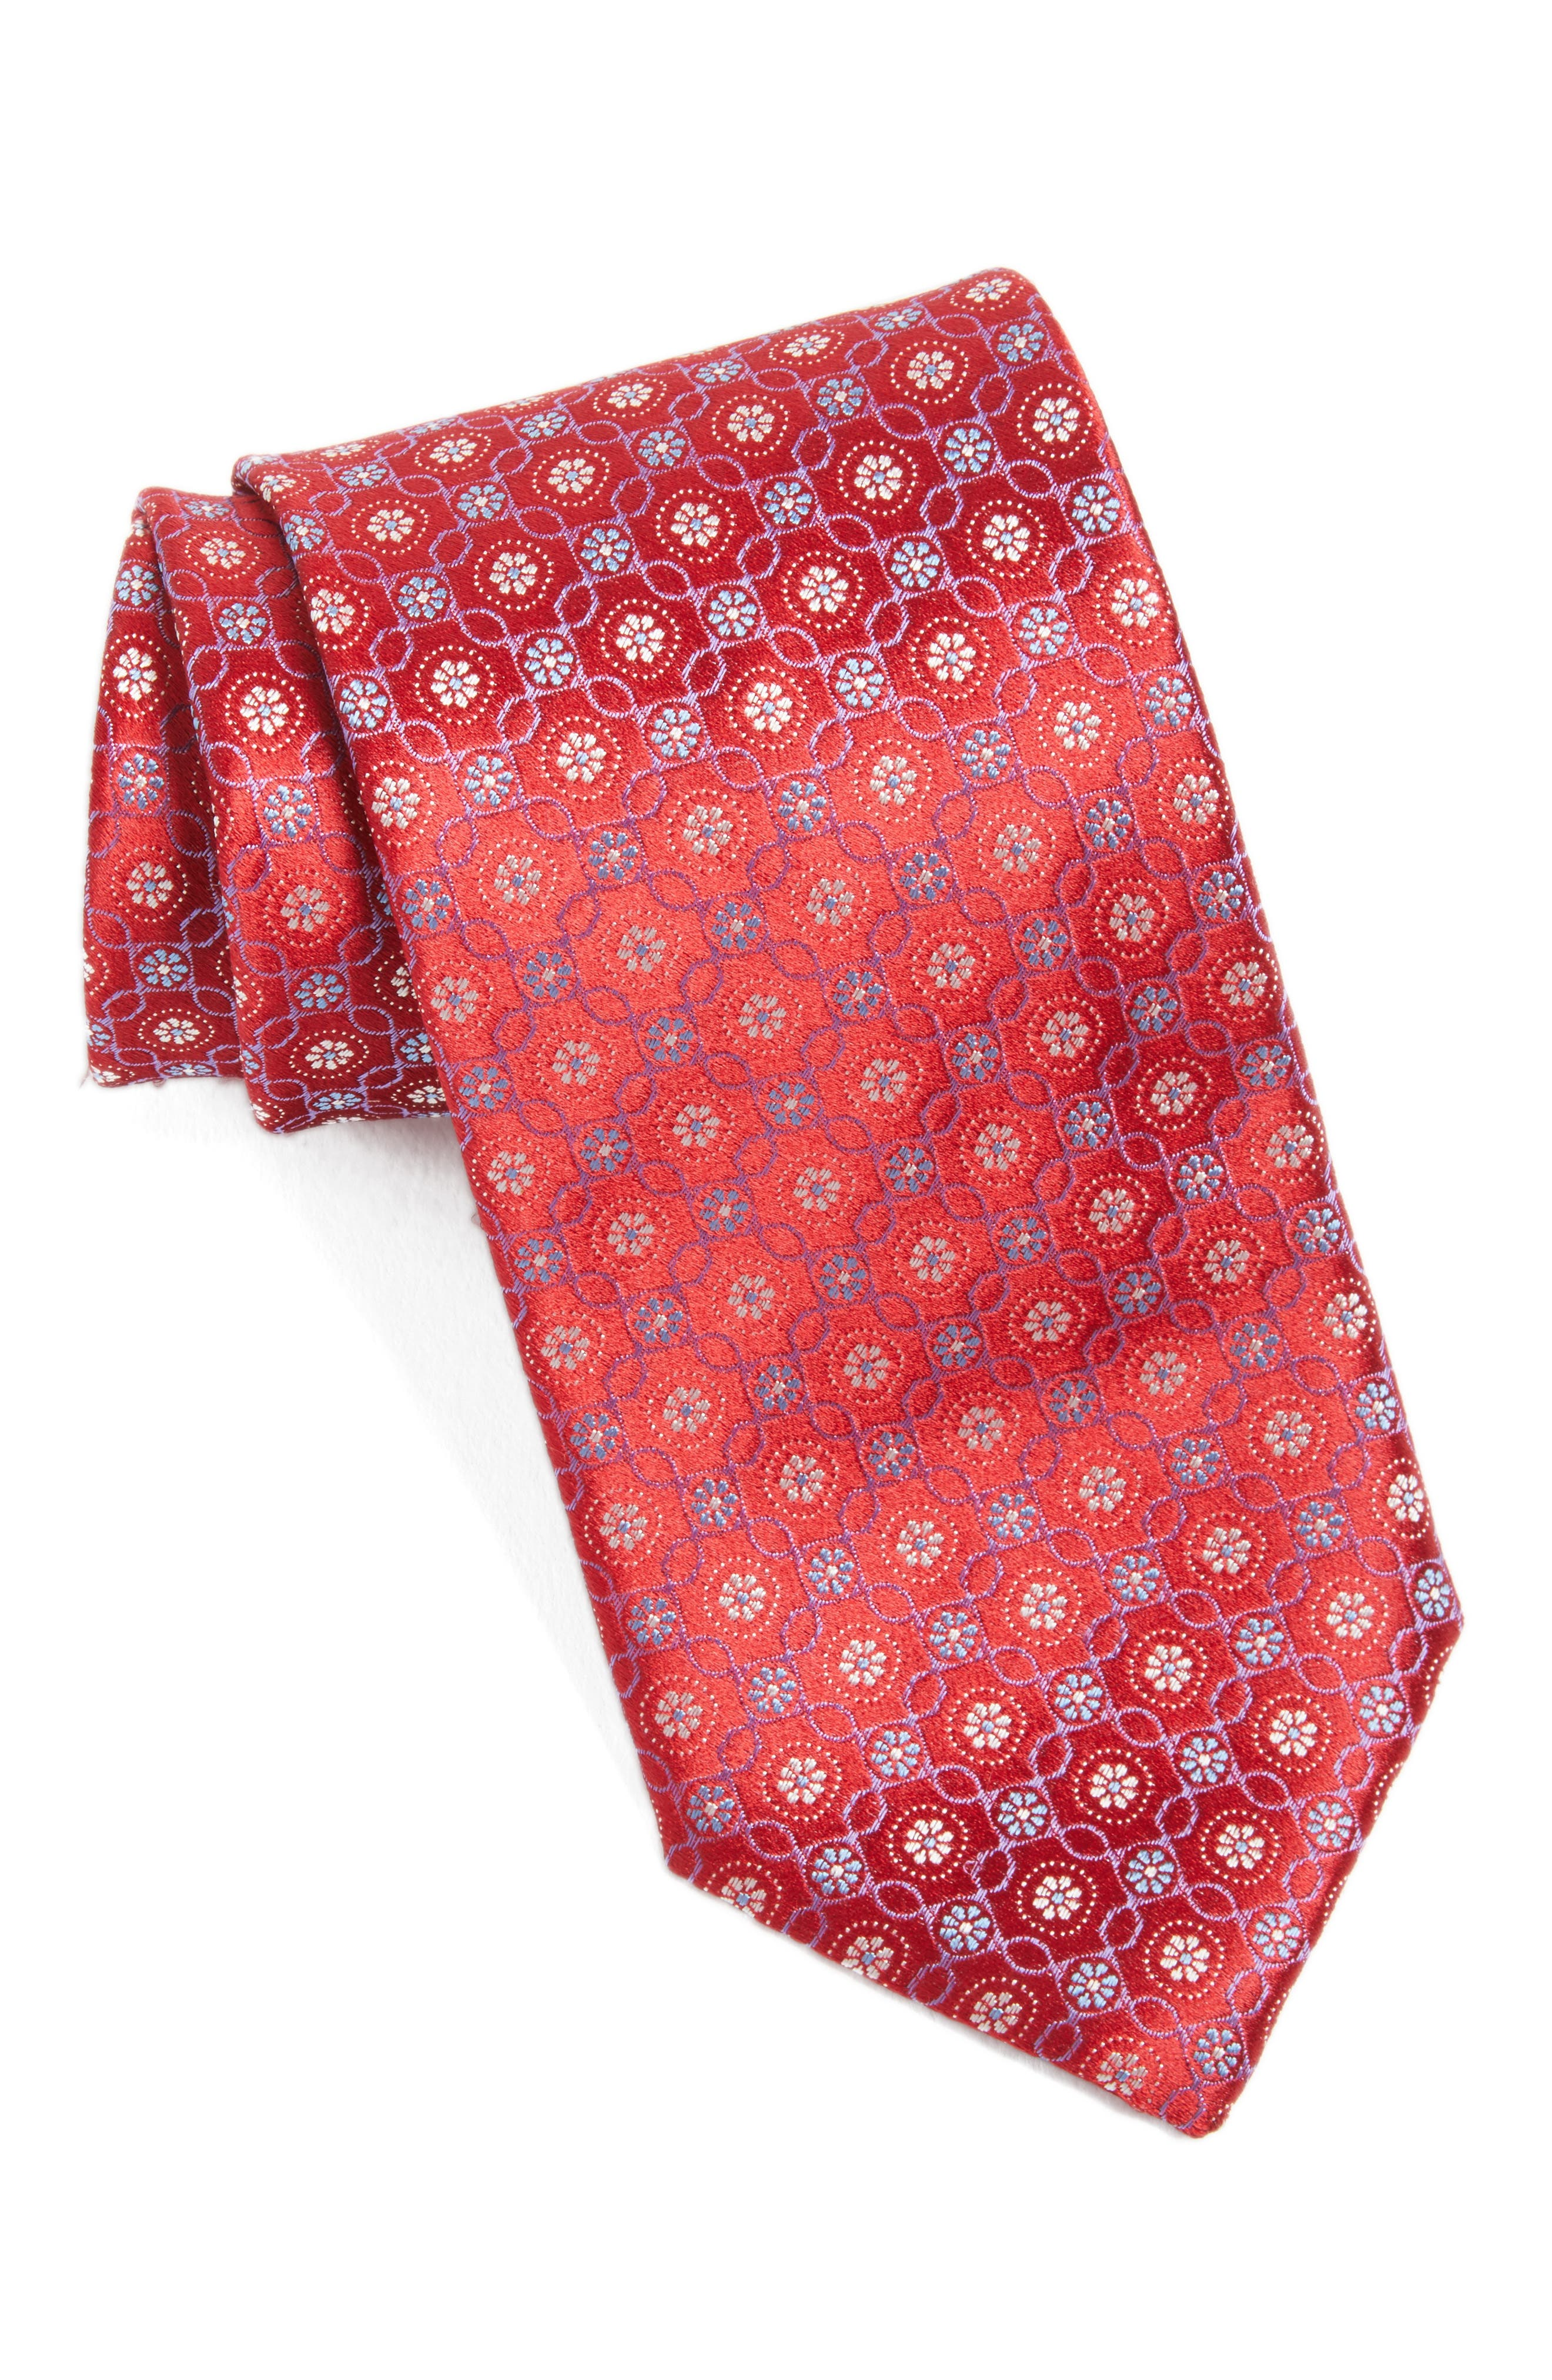 Alternate Image 1 Selected - Canali Medallion Silk Tie